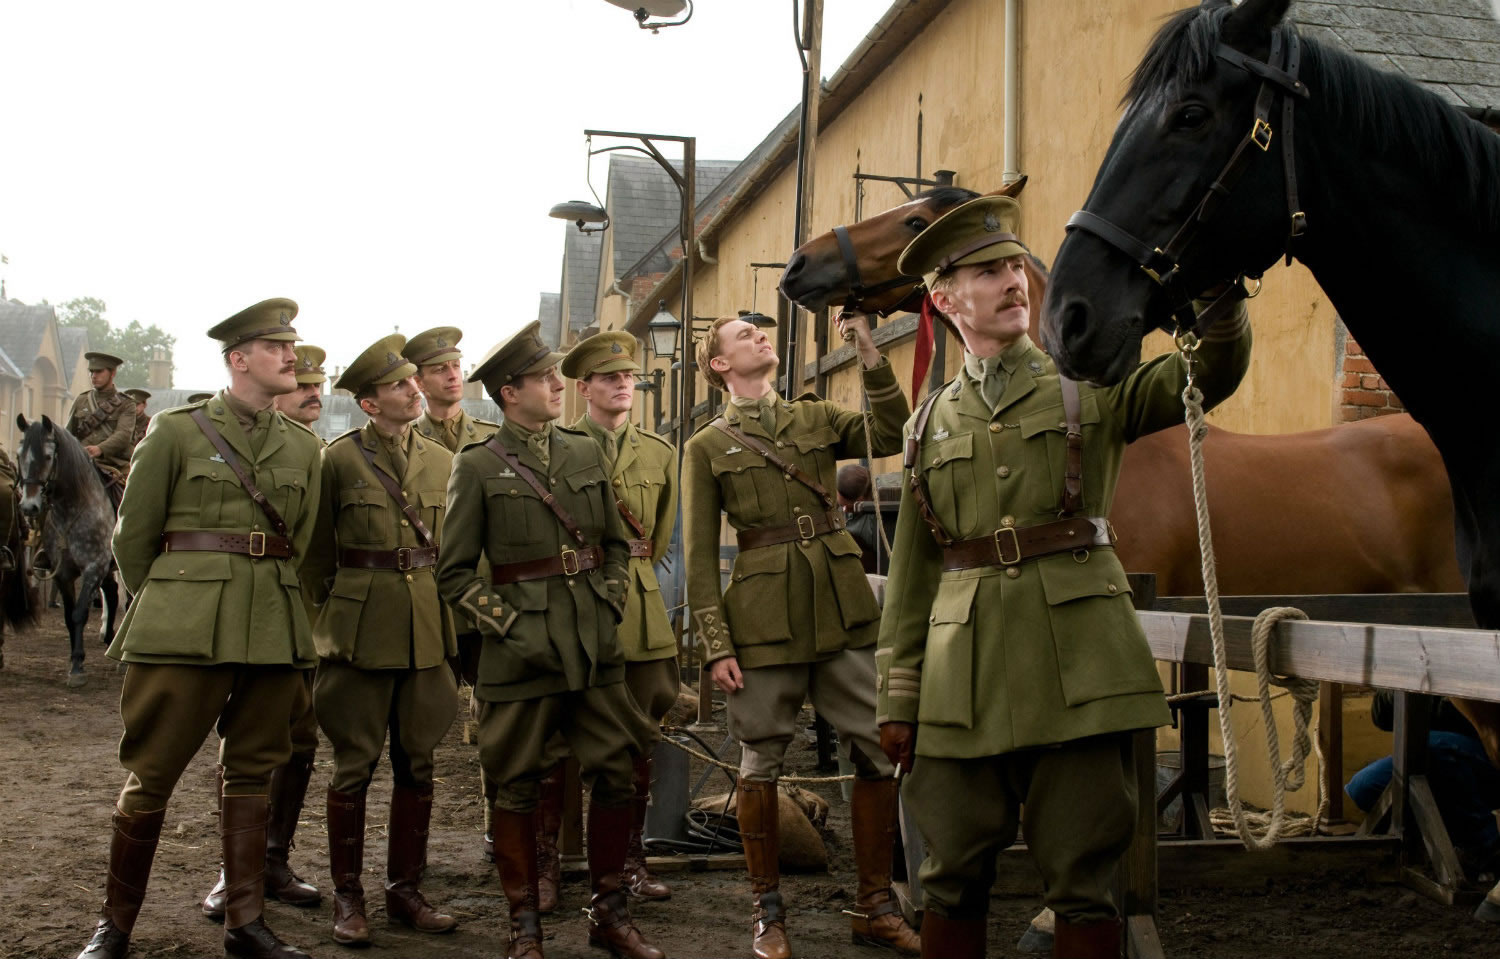 soldiers with horse, war horse movie